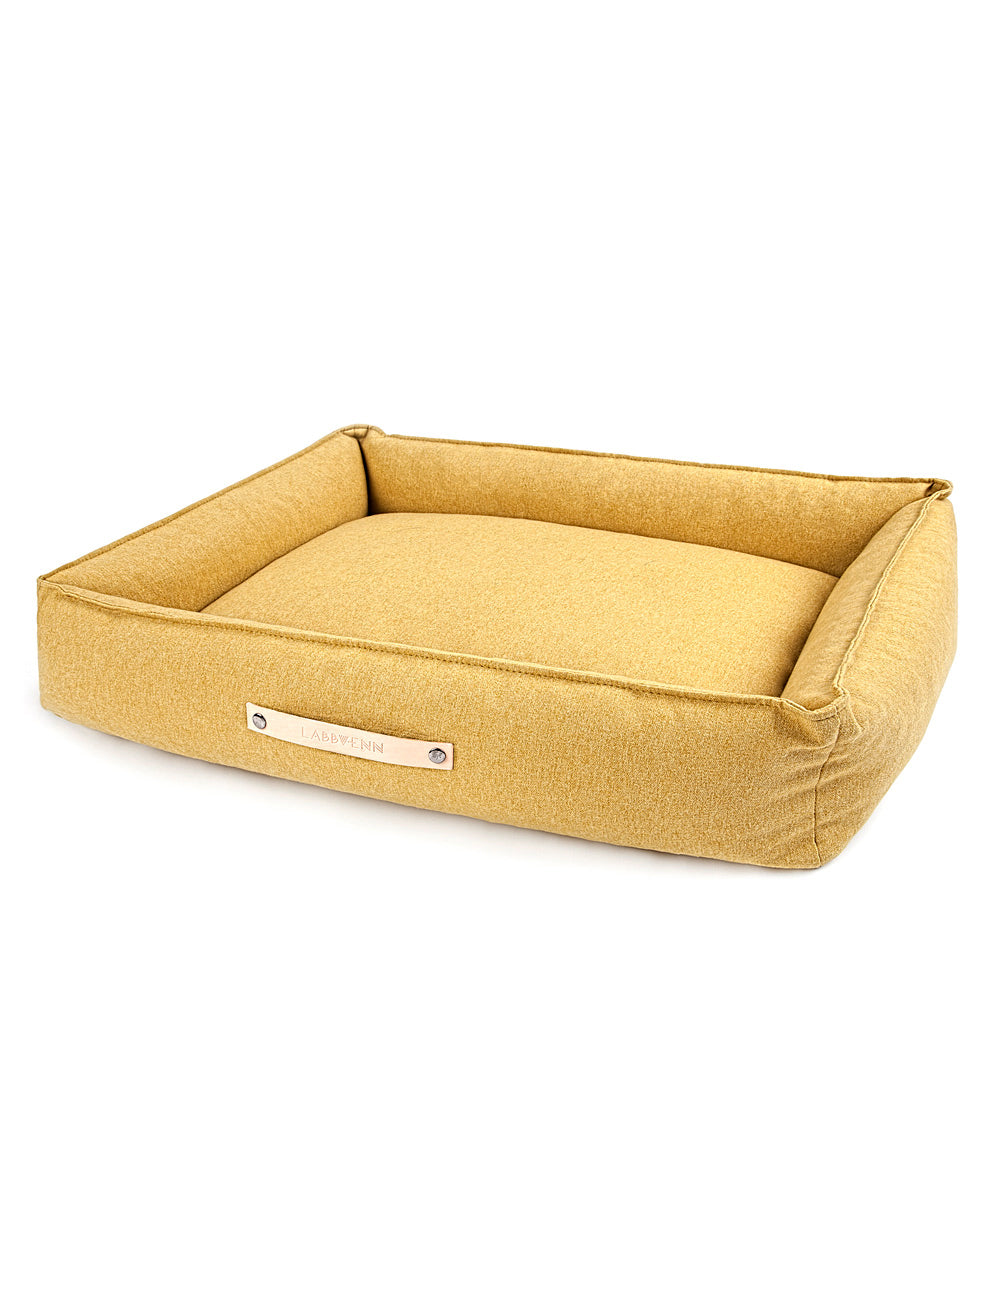 Movik Dog Bed | Honey